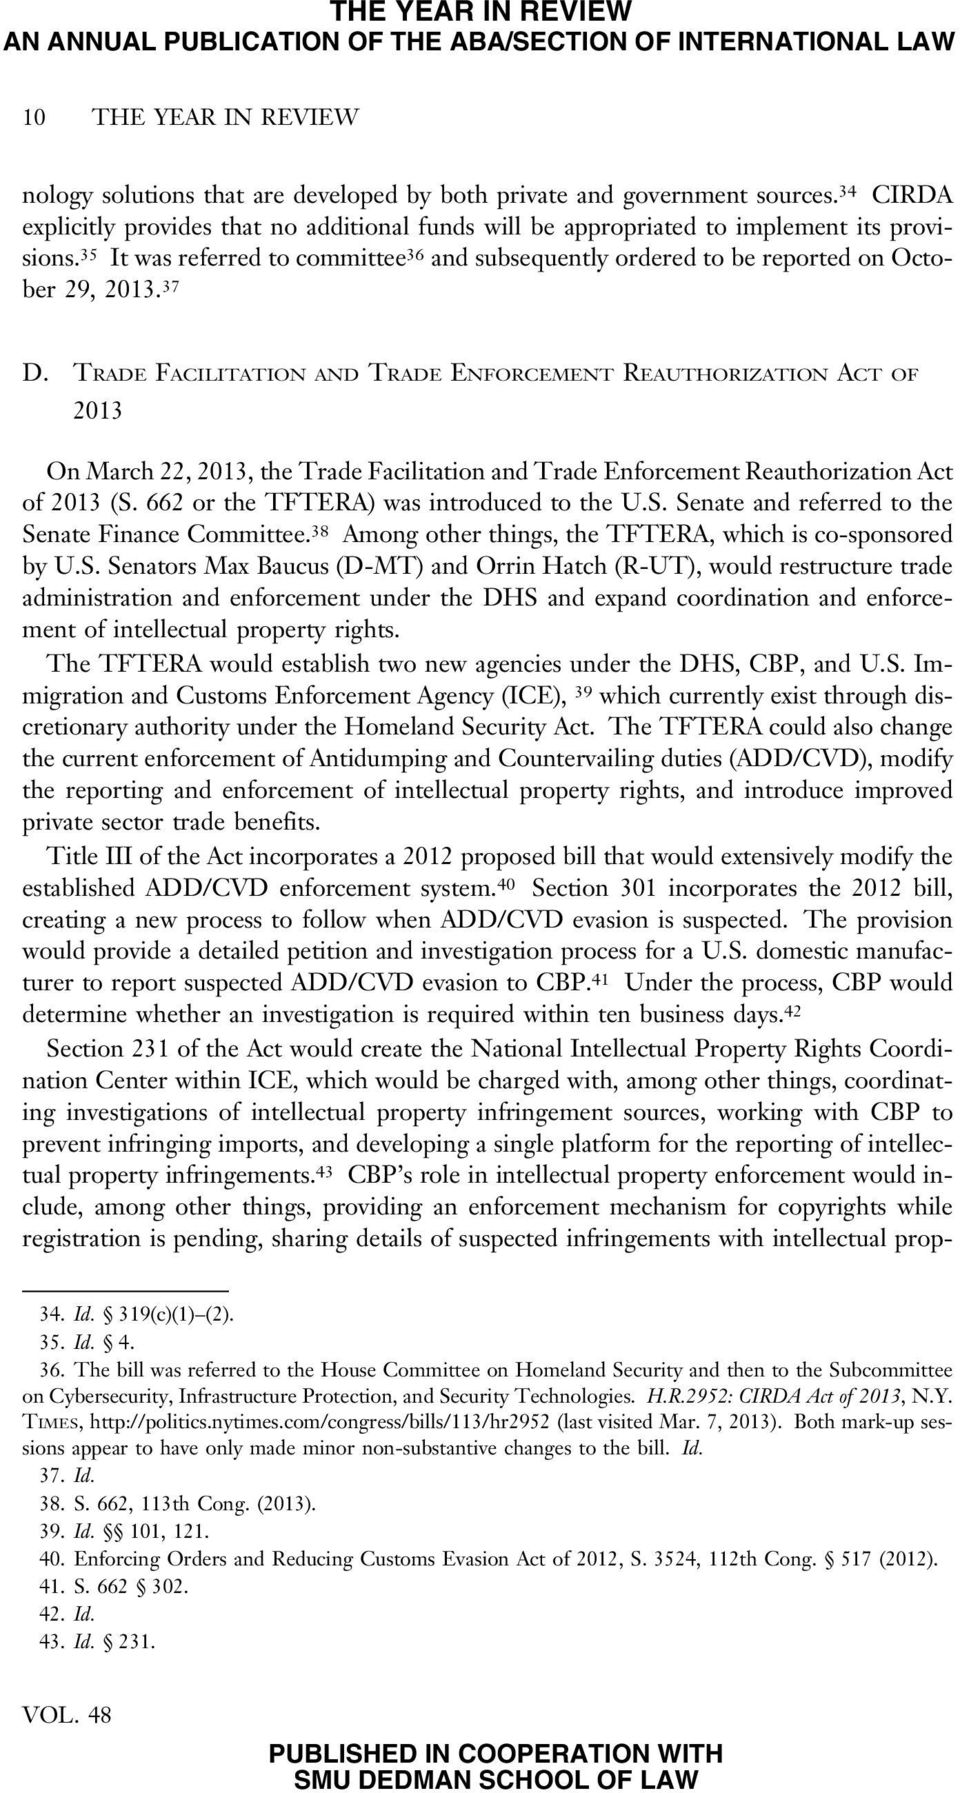 37 D. TRADE FACILITATION AND TRADE ENFORCEMENT REAUTHORIZATION ACT OF 2013 On March 22, 2013, the Trade Facilitation and Trade Enforcement Reauthorization Act of 2013 (S.